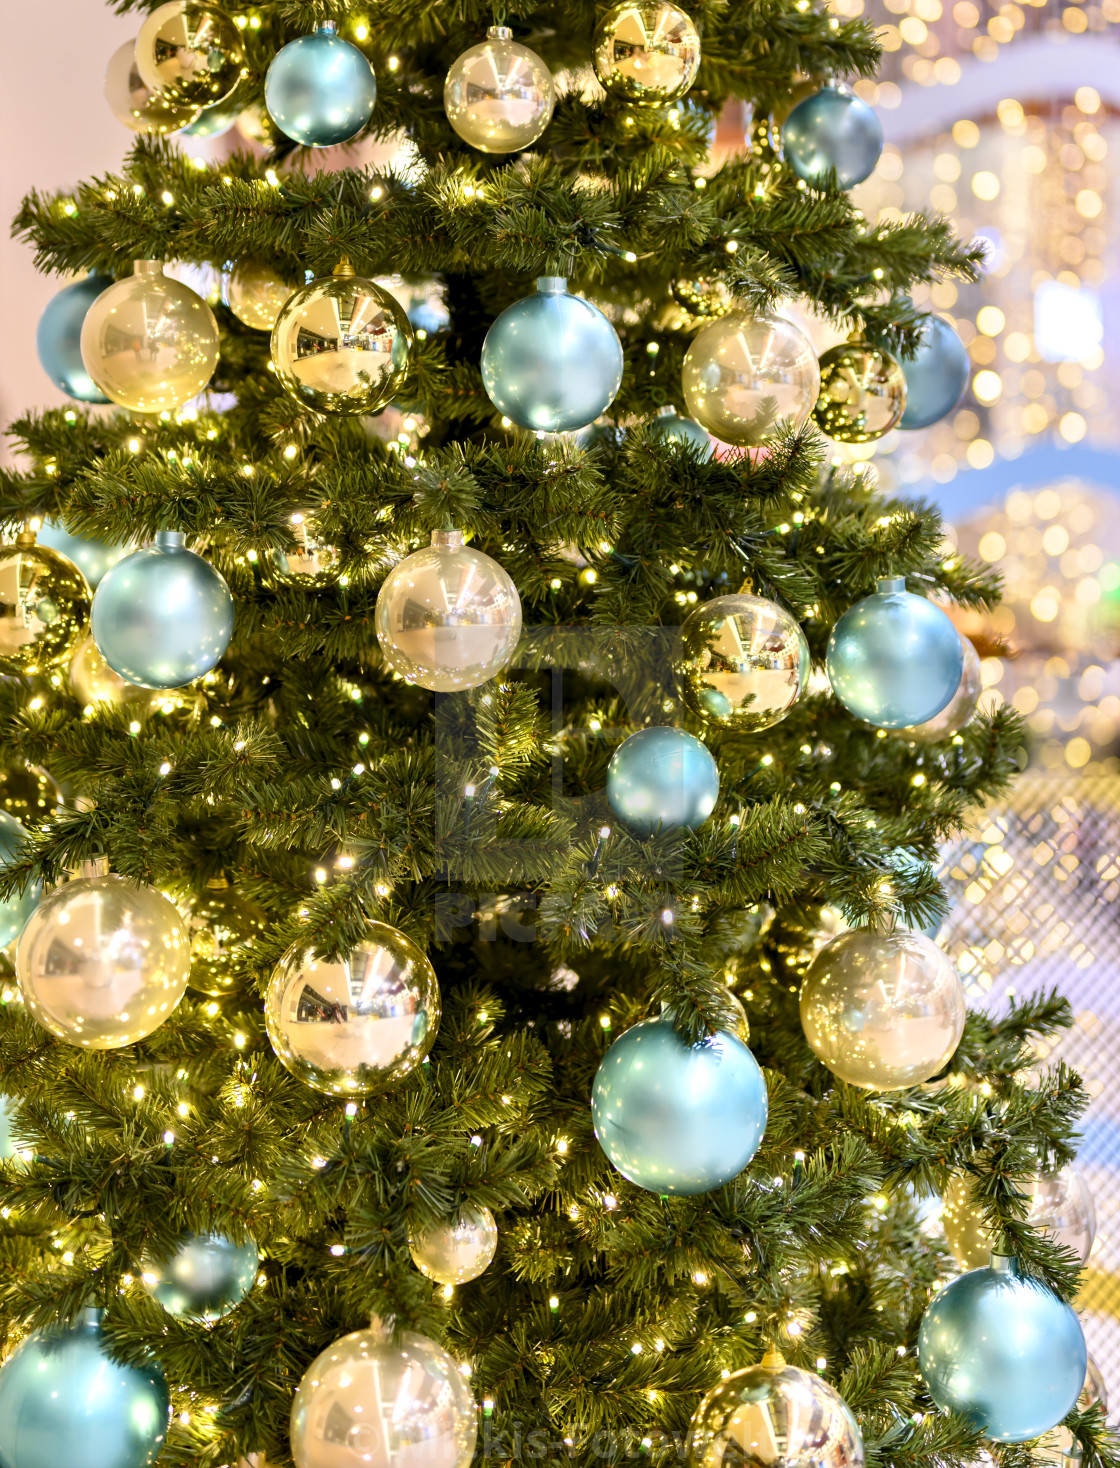 Christmas Tree With Golden And Turquoise Balls License Download Or Print For 31 00 Photos Picfair